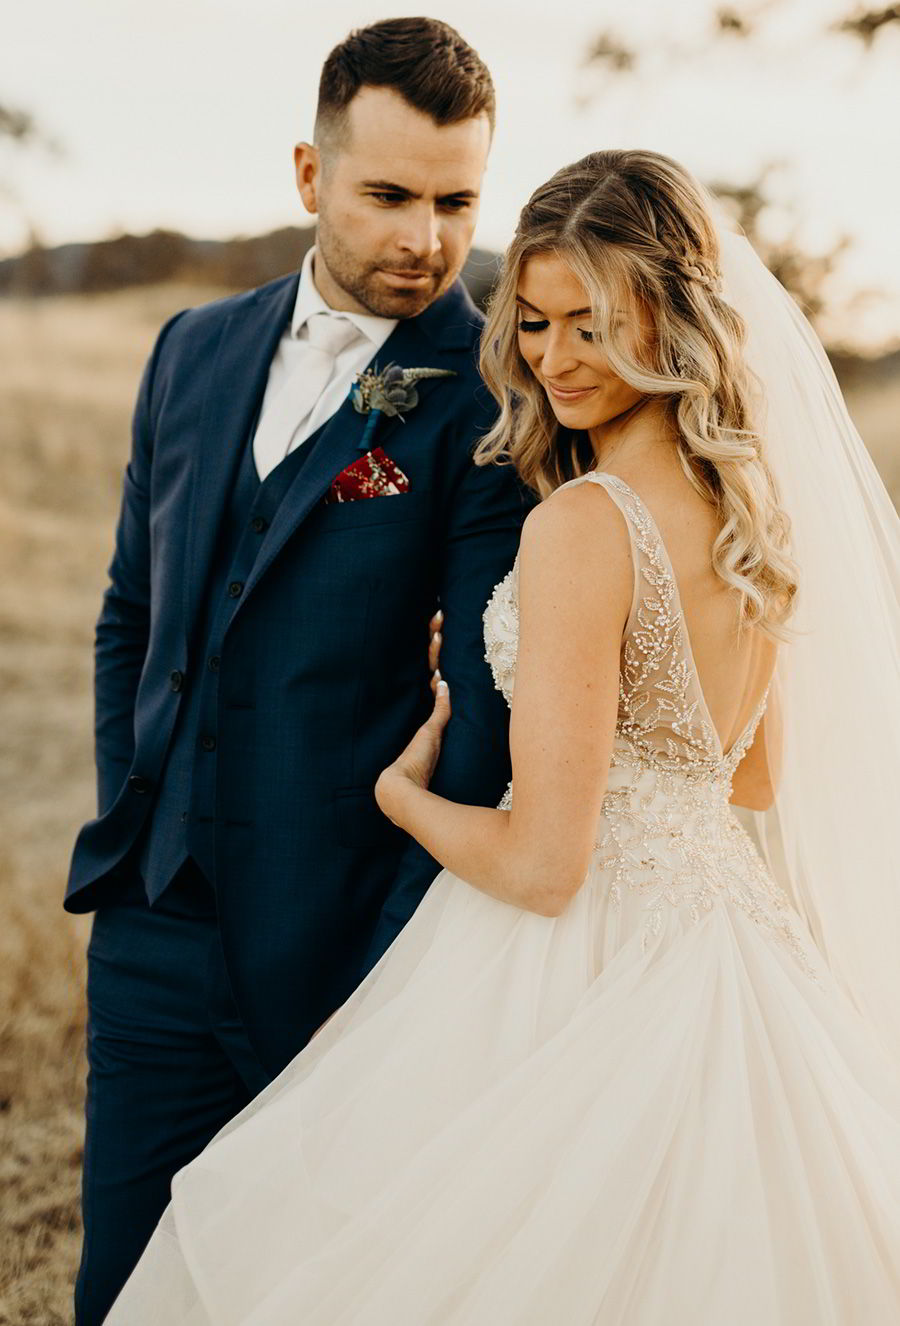 sottero midgley 2018 gold dress (amelie) sleeveless illusion vneck ball gown wedding dress colegarrettphotography photo bride melissa navy suit groom zv